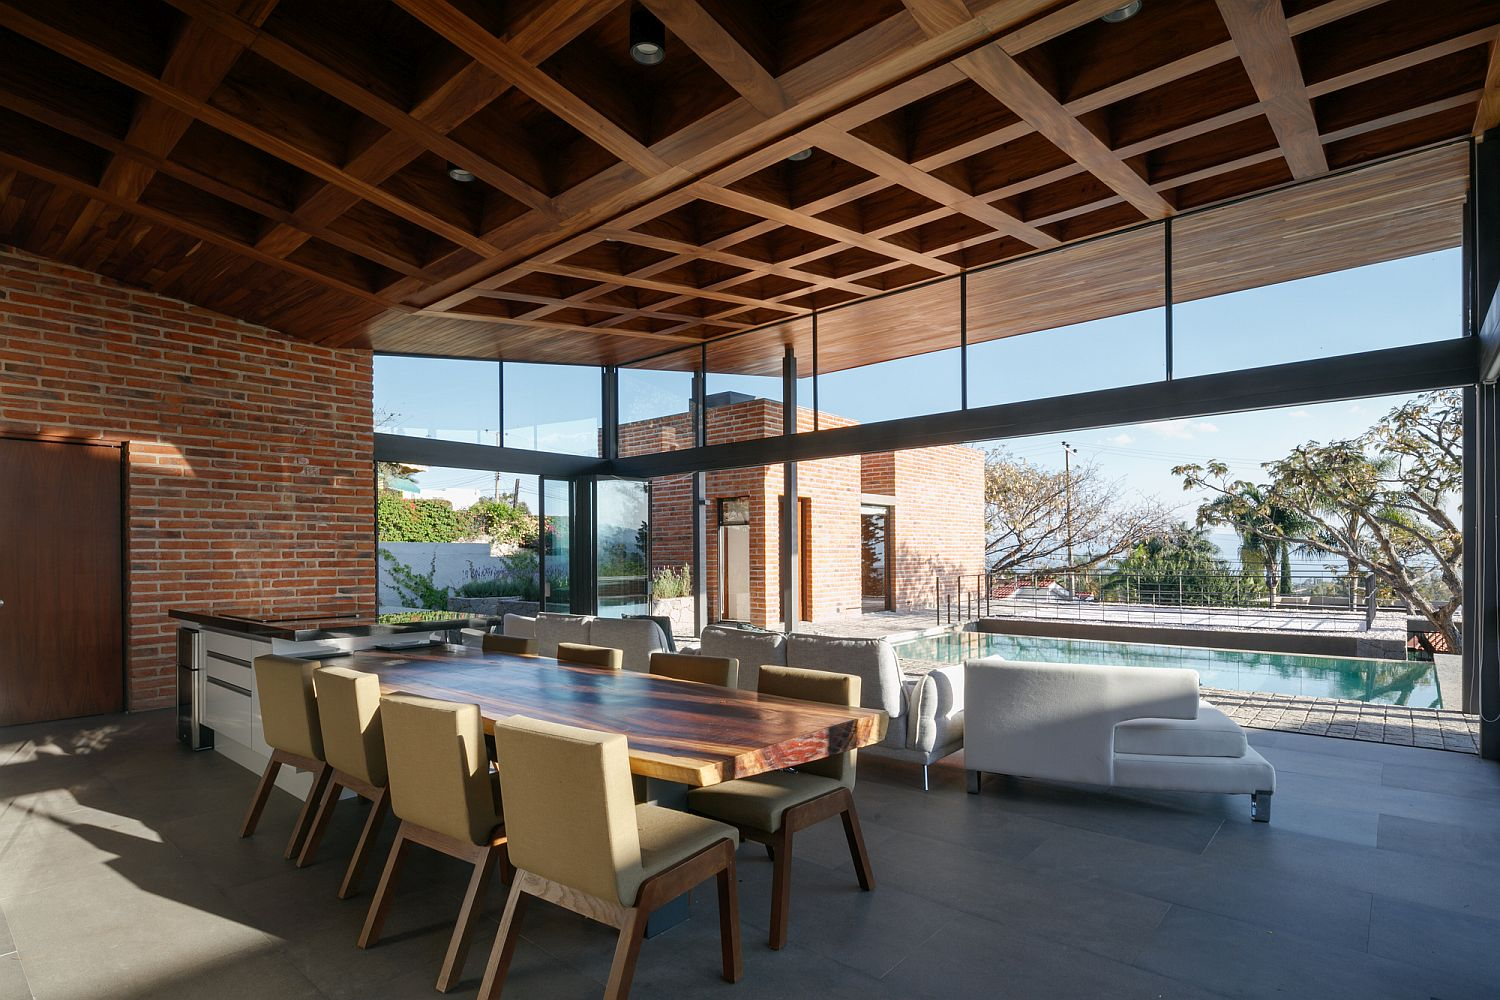 Coffered wooden ceiling of the house coupled with brick walls